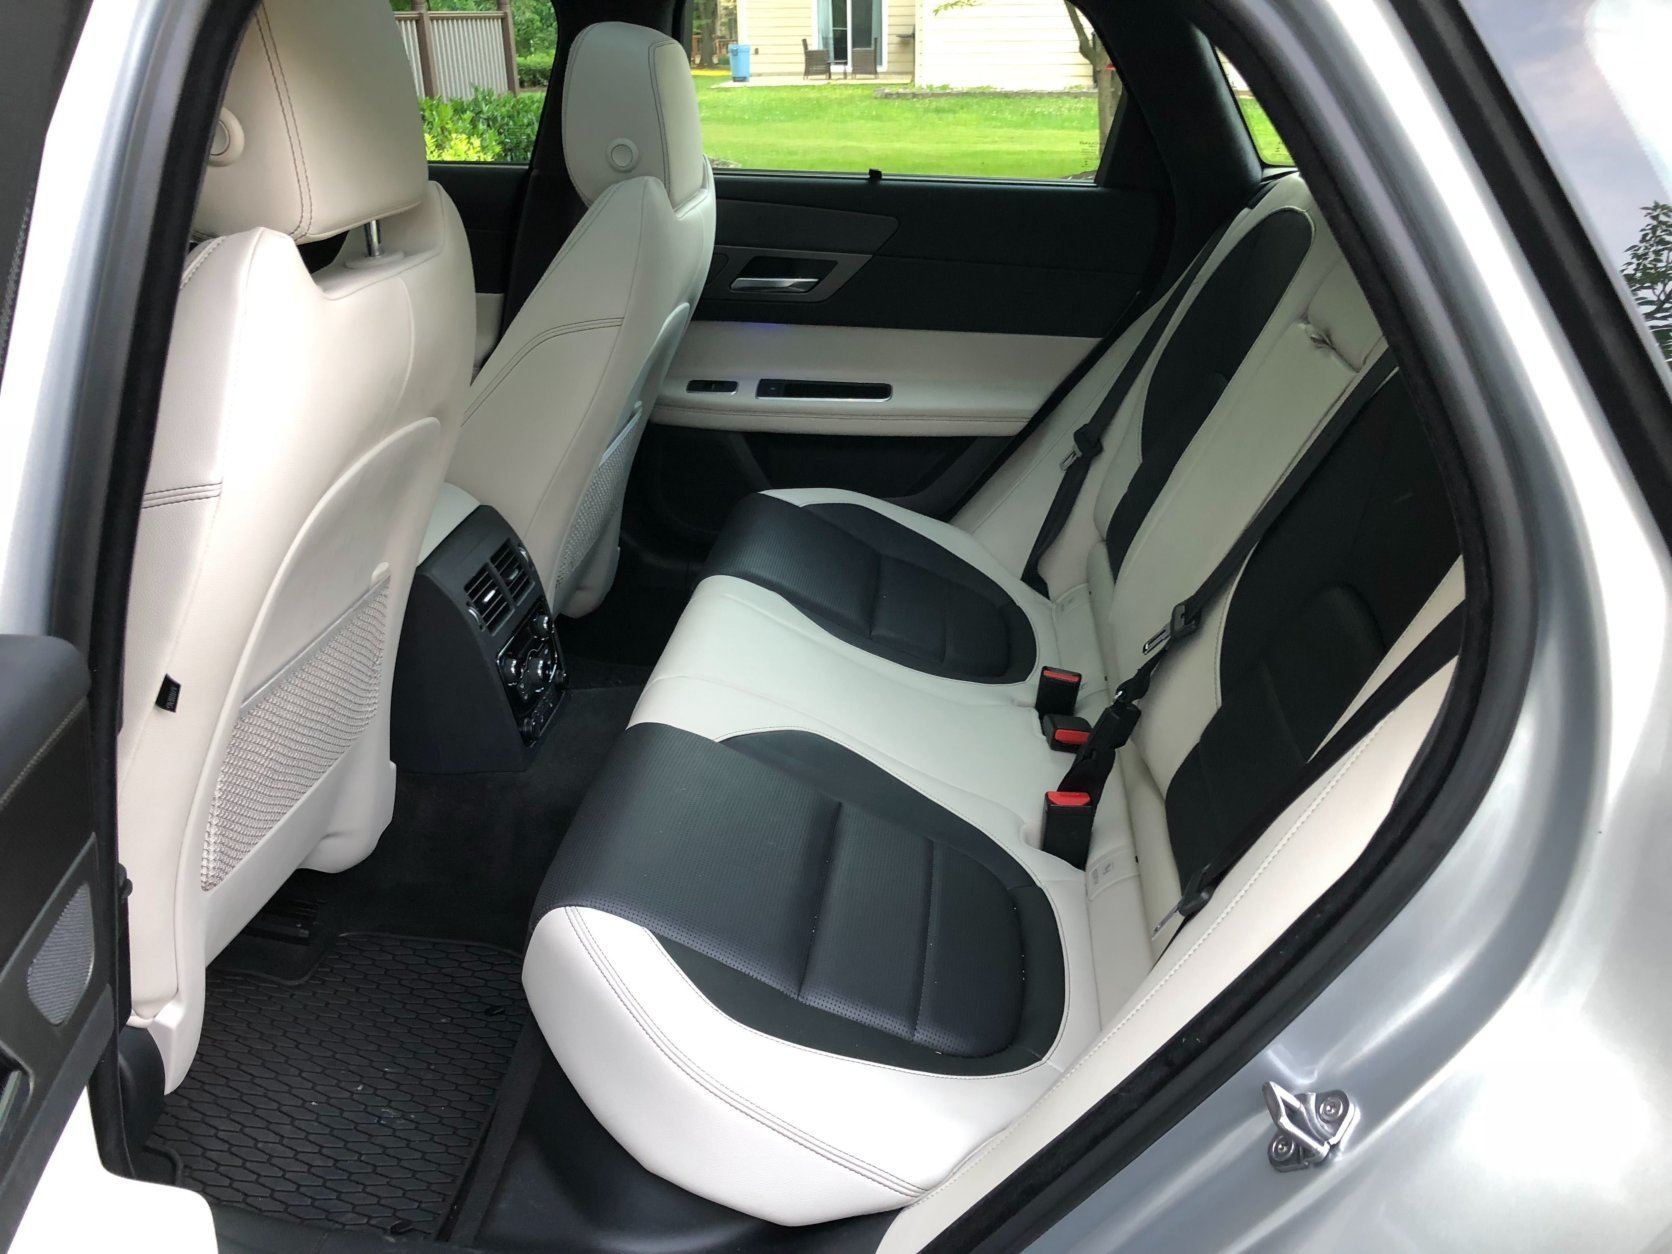 The interior color of the Jaguar XF Sportbrake is different — a light Oyster color with Ebony inserts on the seats and door panels that WTOP Car Reviewer Mike Parris says work very well together. (WTOP/Mike Parris )